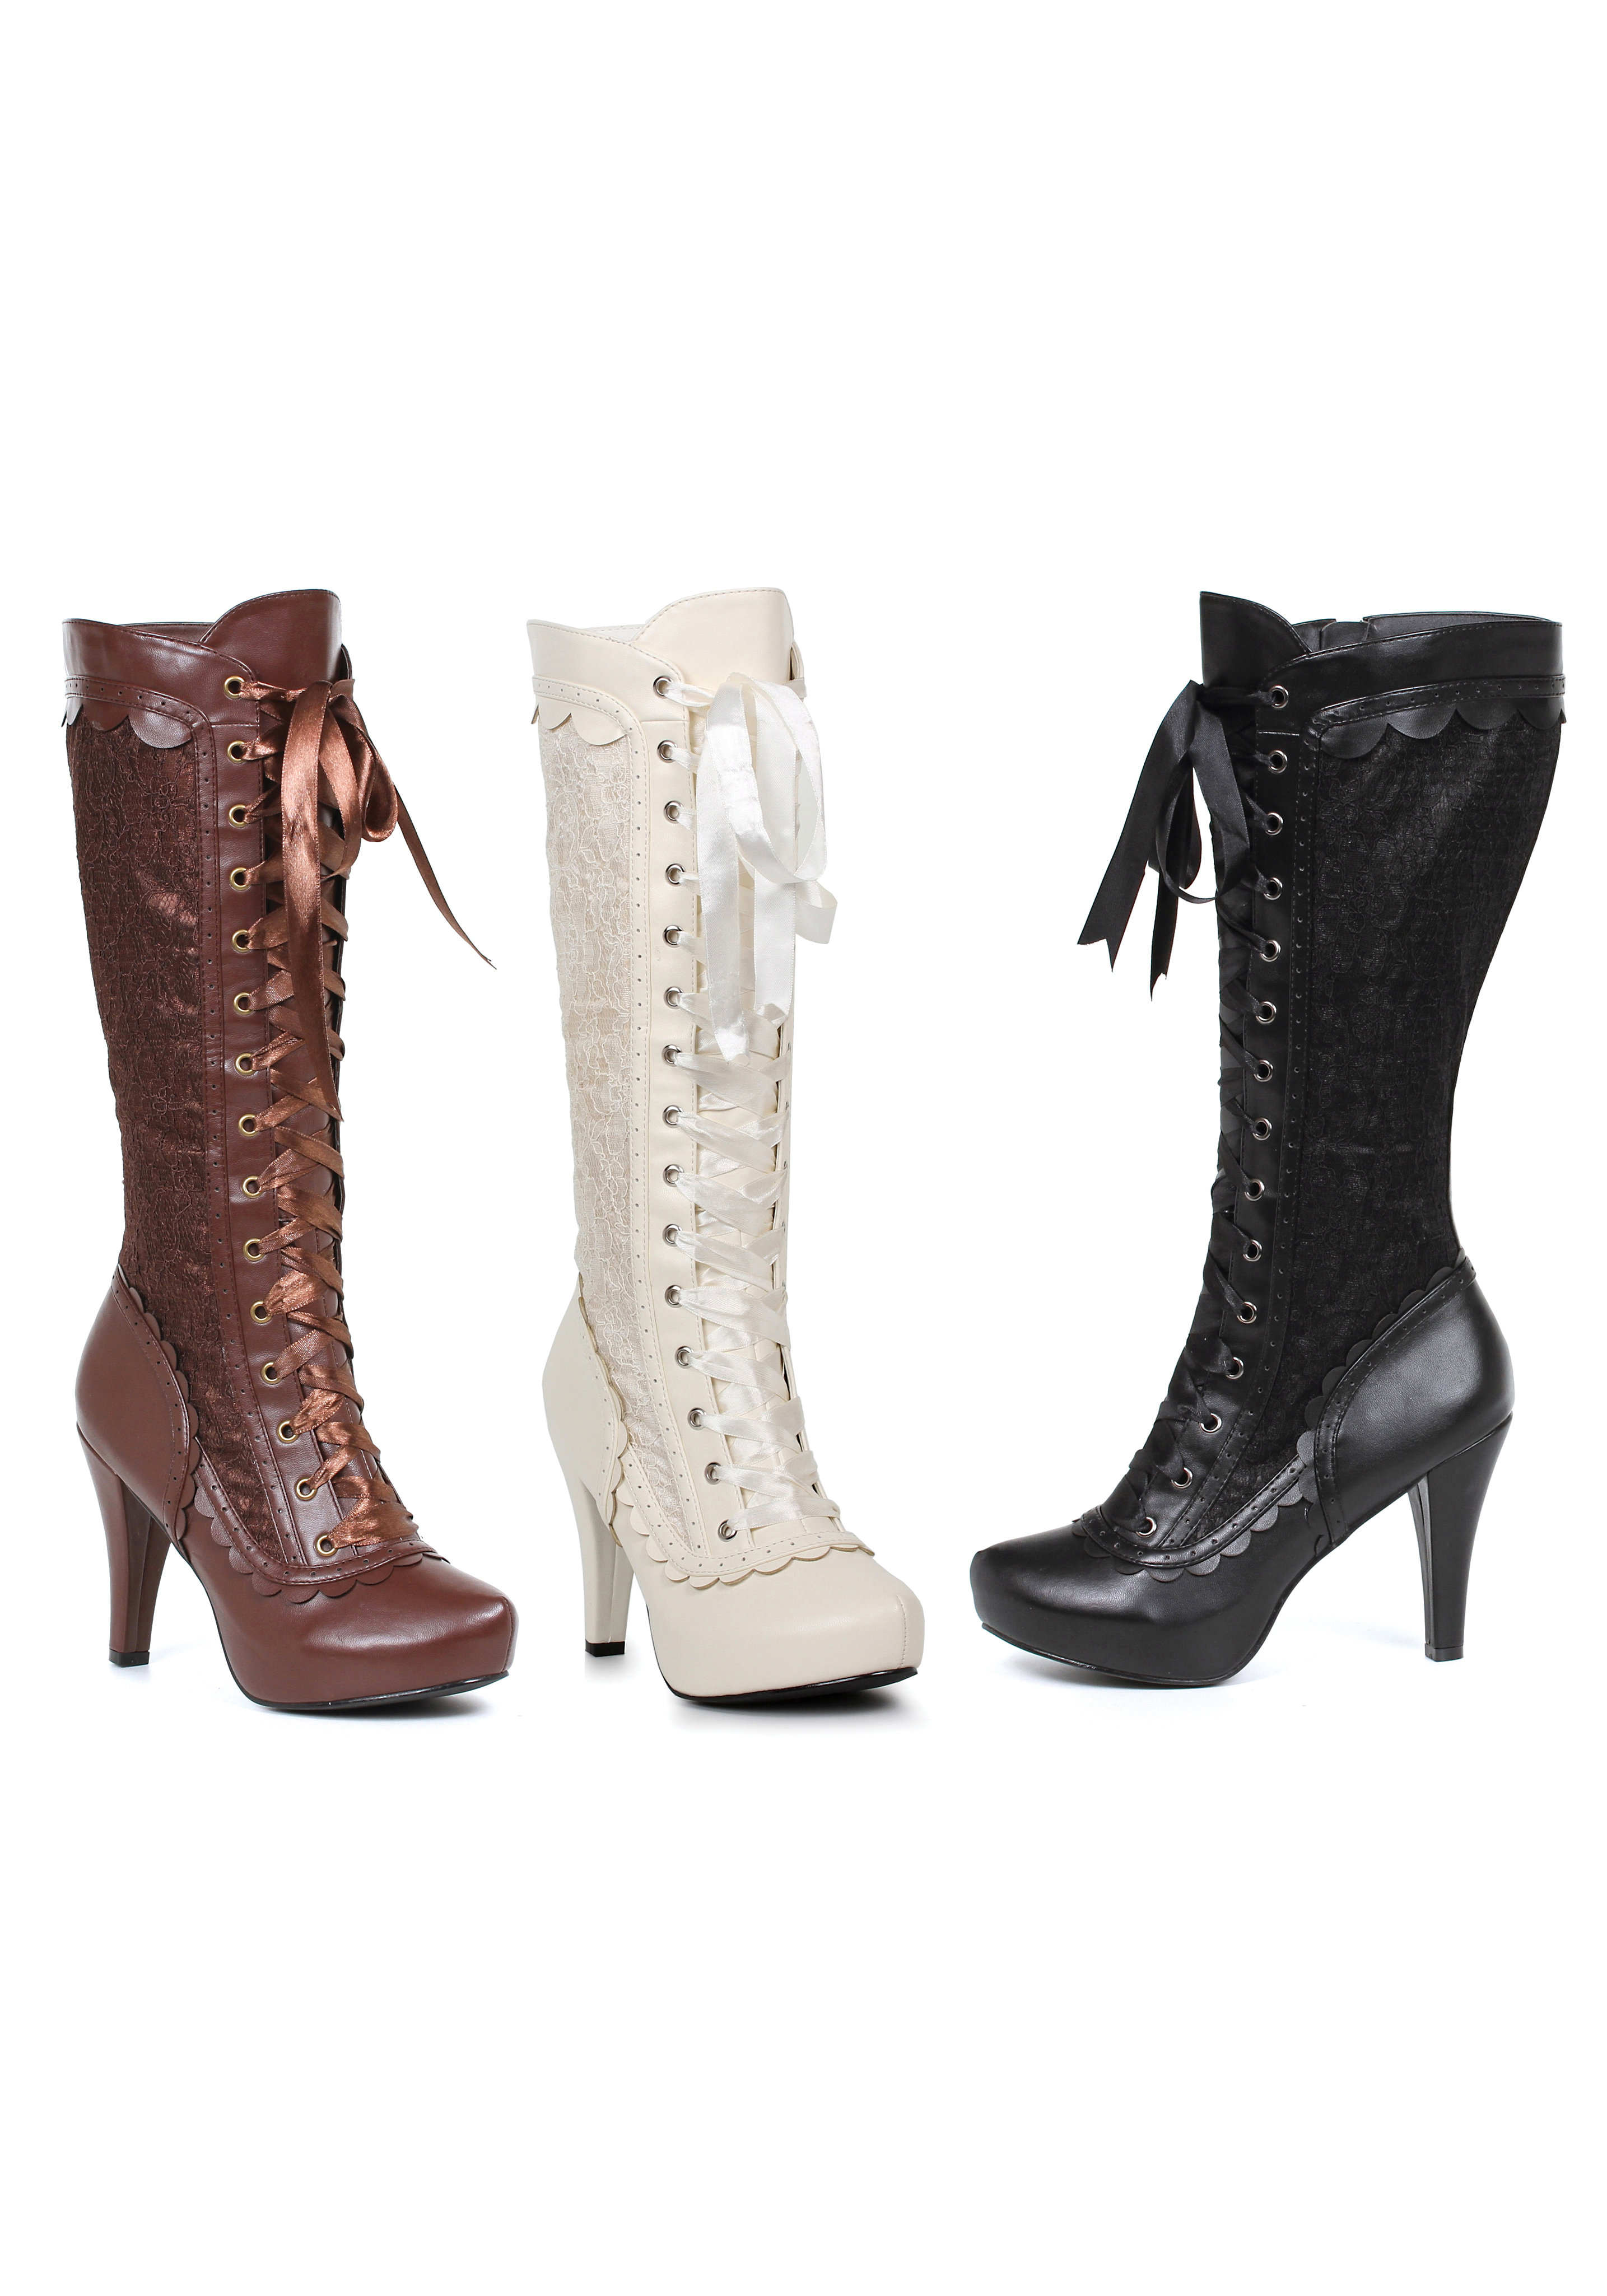 Ellie Shoes 414-MARY 4 Inch Heel Boots